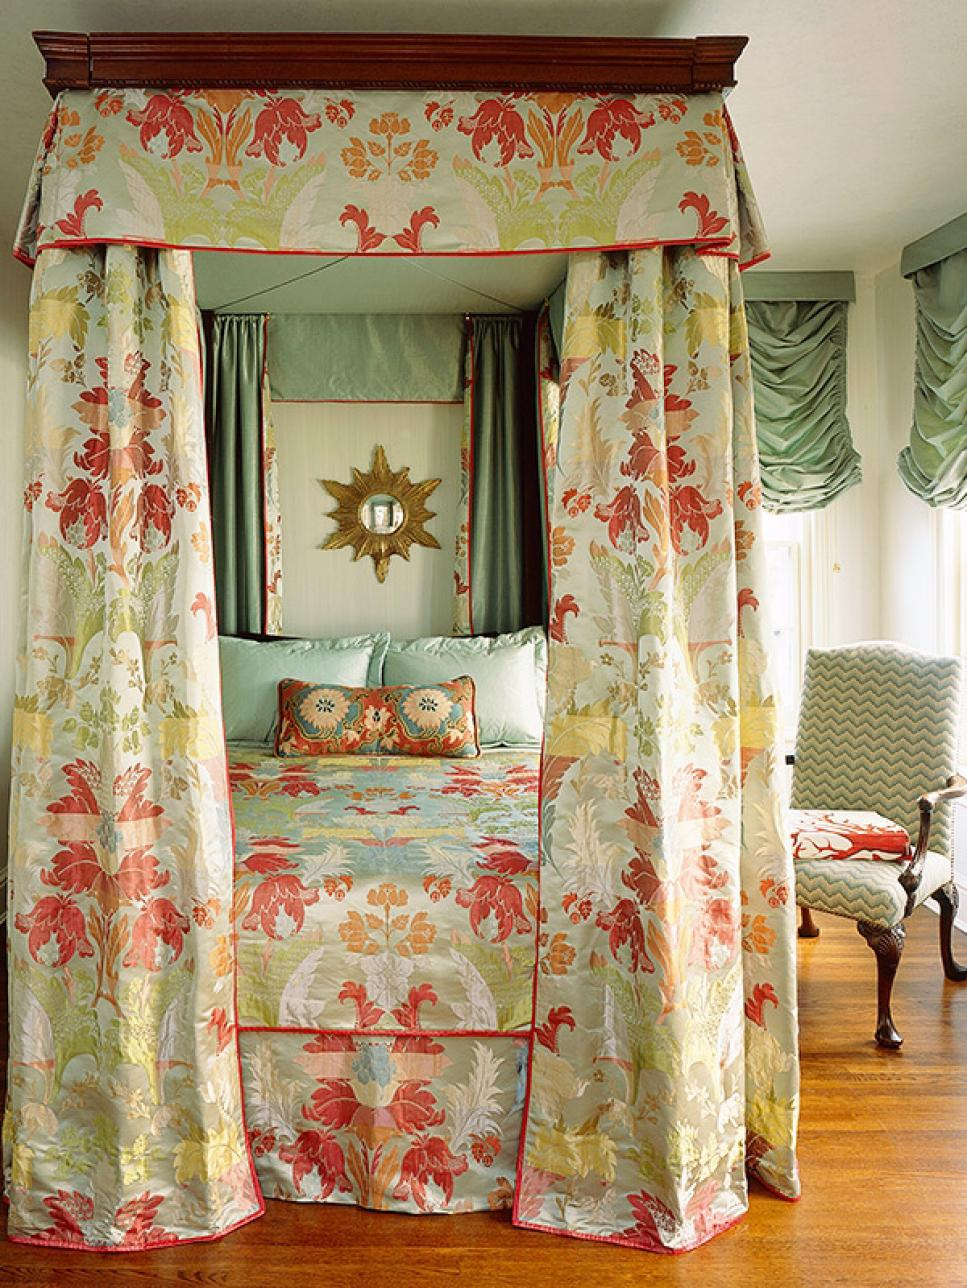 Small Bedroom Designs HGTV - Bedroom ideas for small rooms